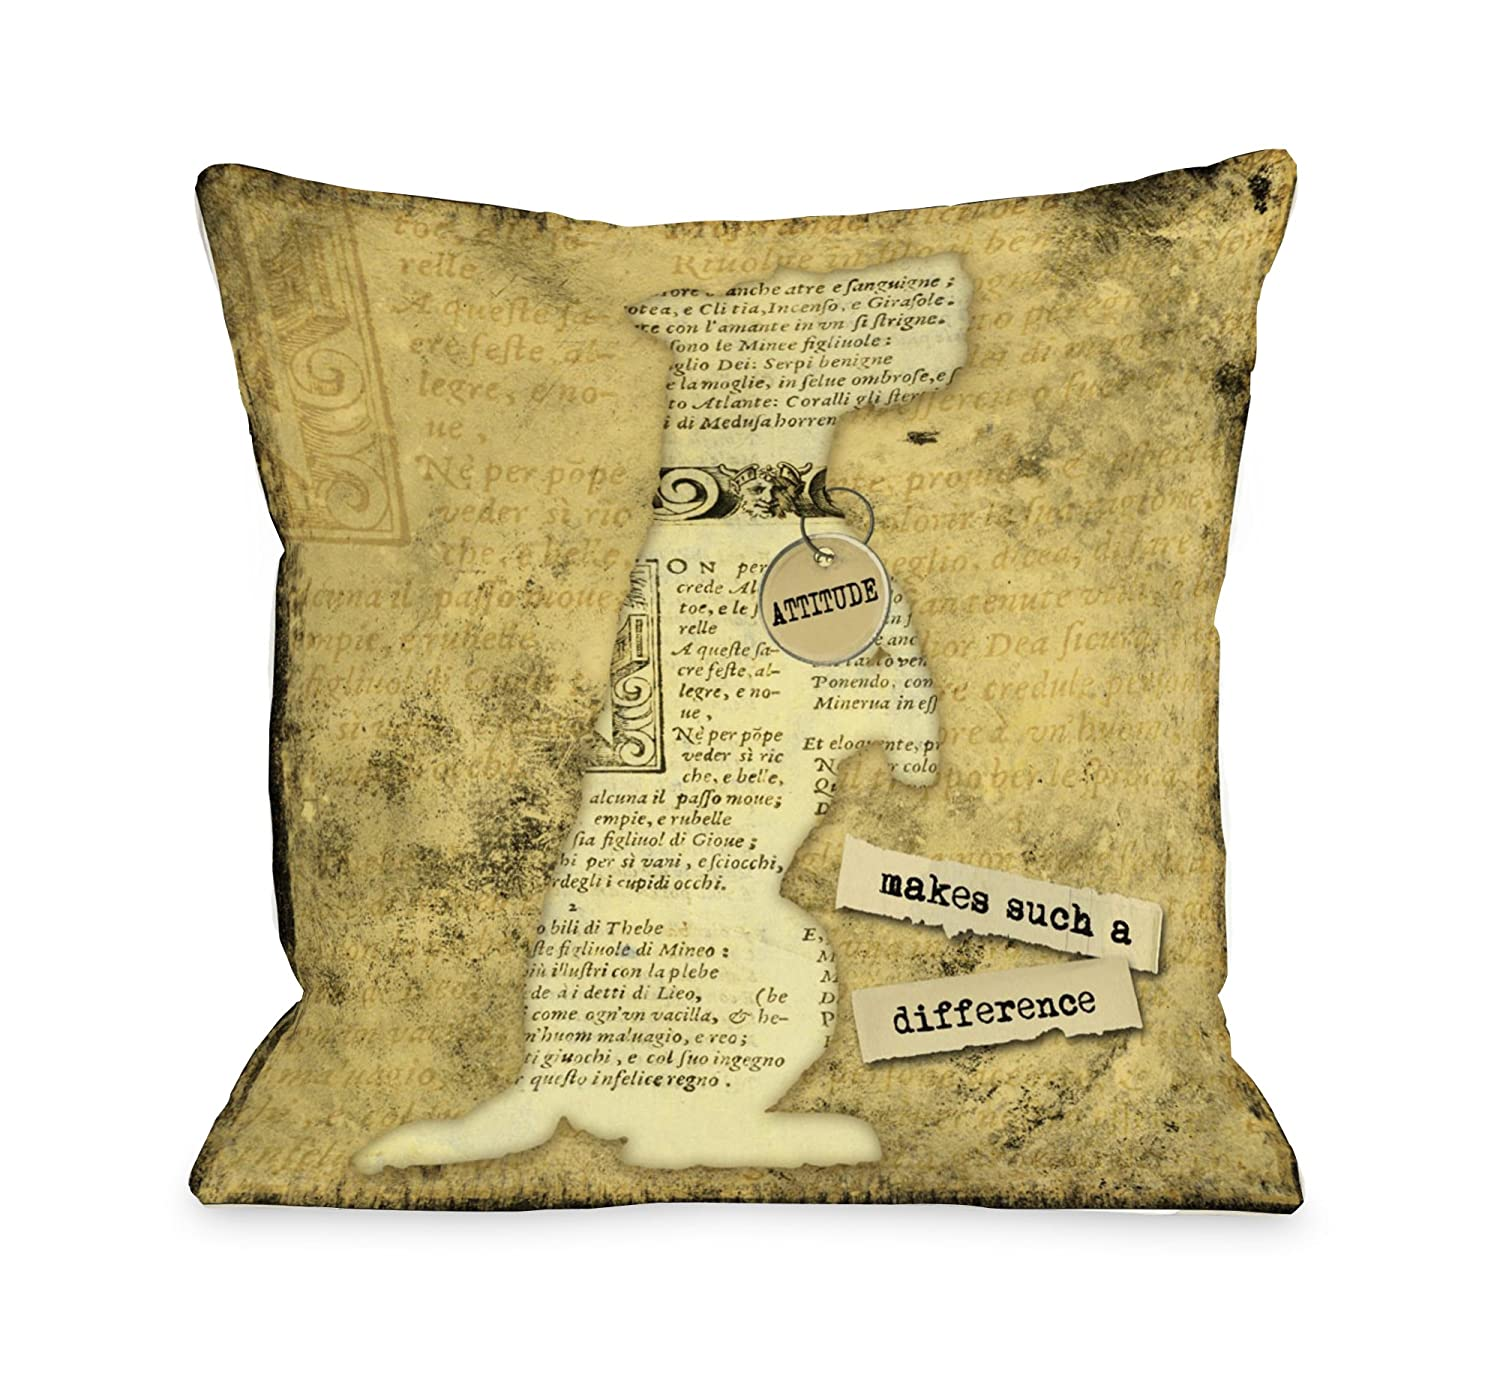 Bentin Pet Decor Attitude Makes Such a Big Difference Throw Pillow, 26 by 26-Inch